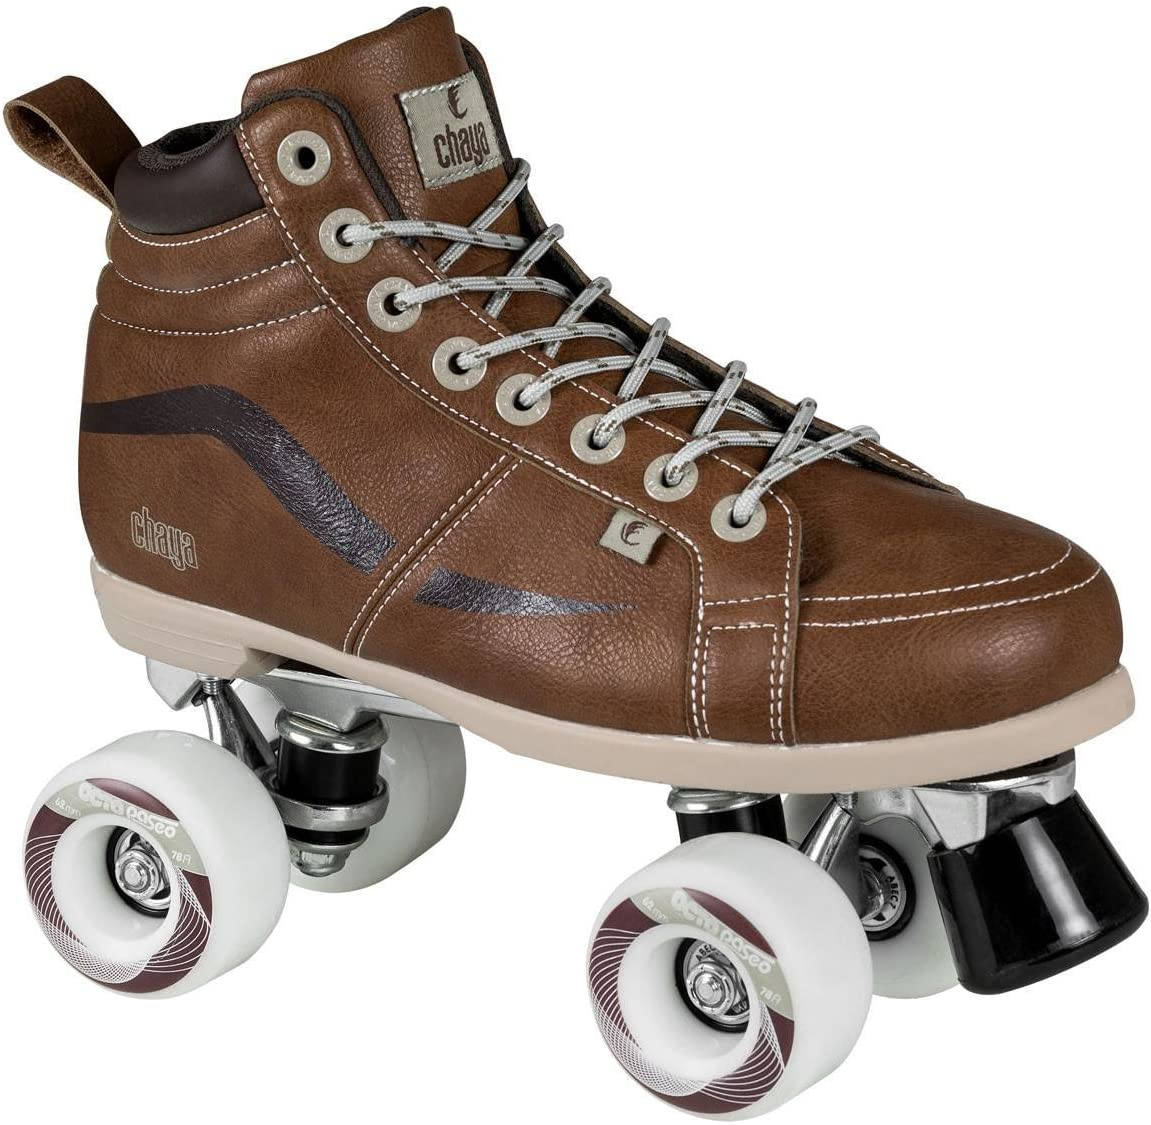 Chaya New Vintage Brown Neat Quad Roller Skates – Vegan